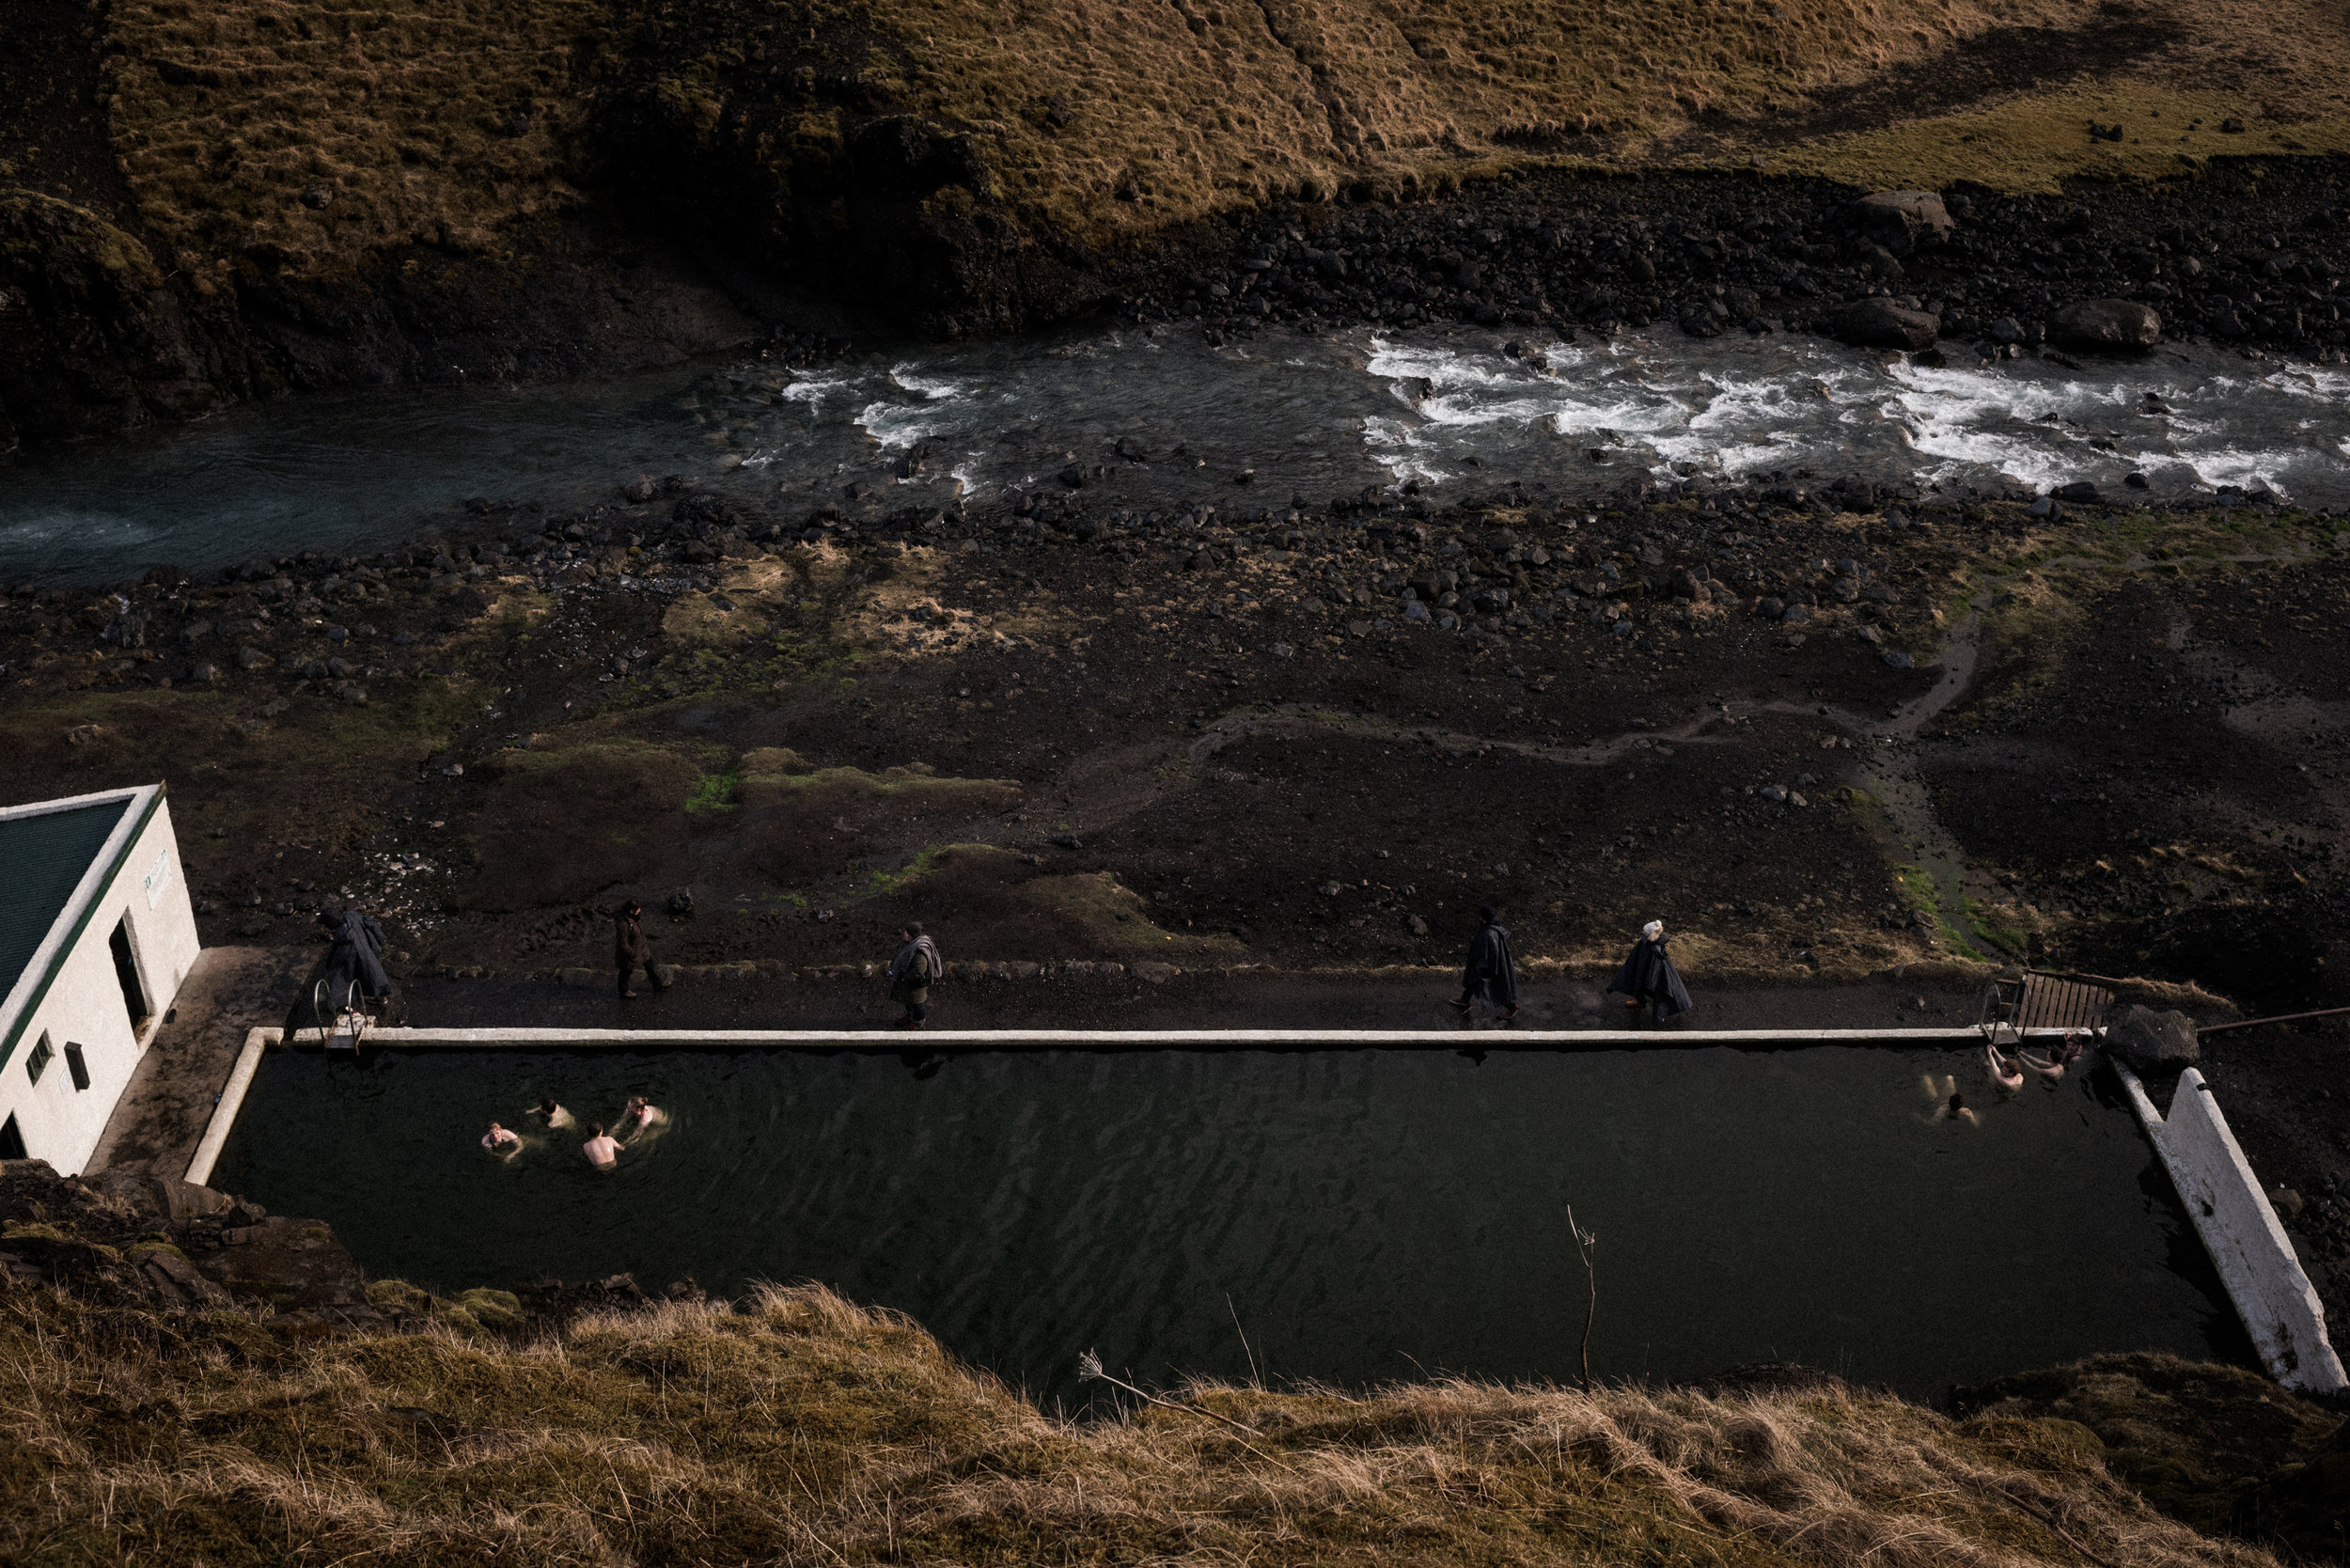 ICELAND_WOMAN_PHOTOGRAPHER_TARASHUPE_OUTDOOR_PHOTOGRAPHY_035.jpg